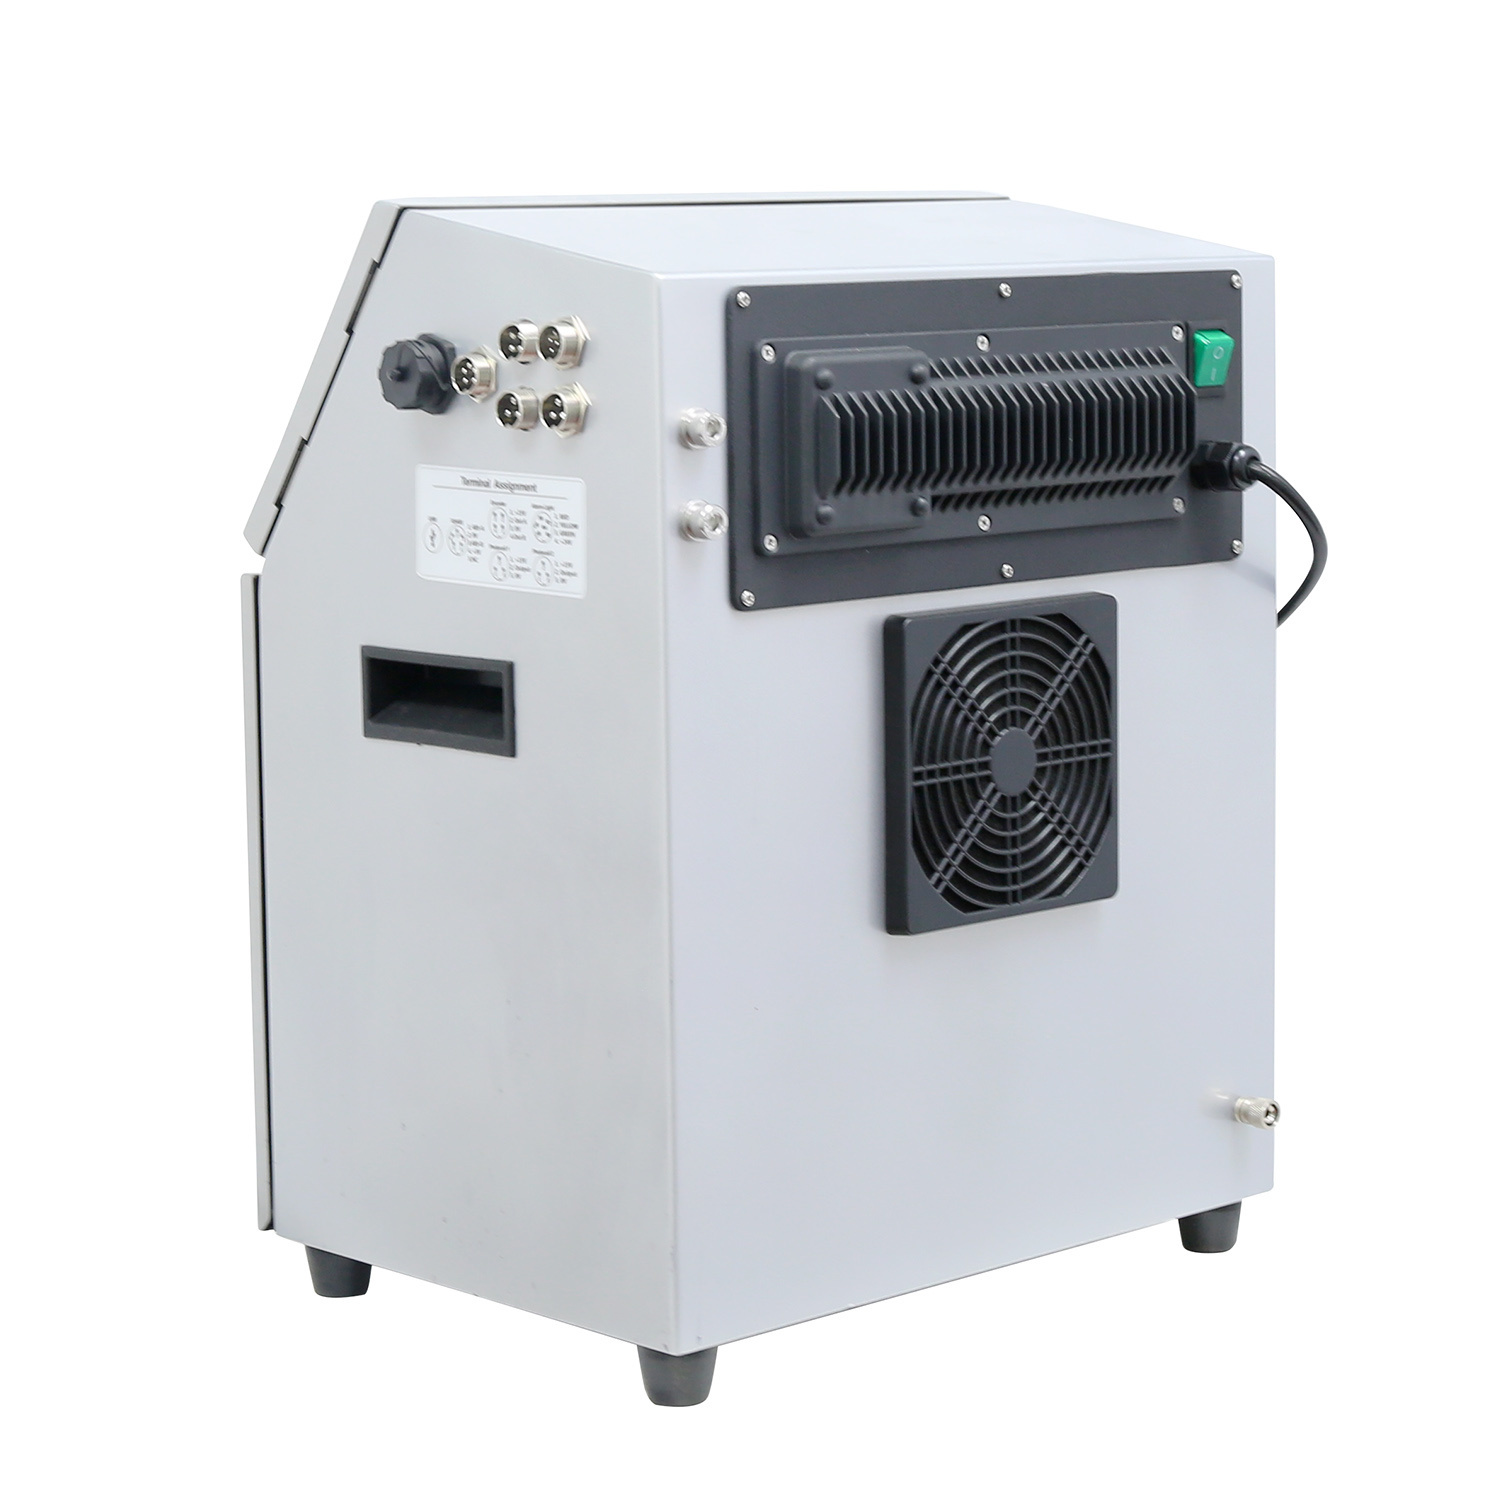 Lead Tech Lt800 Fully Automatic Small Character Inkjet